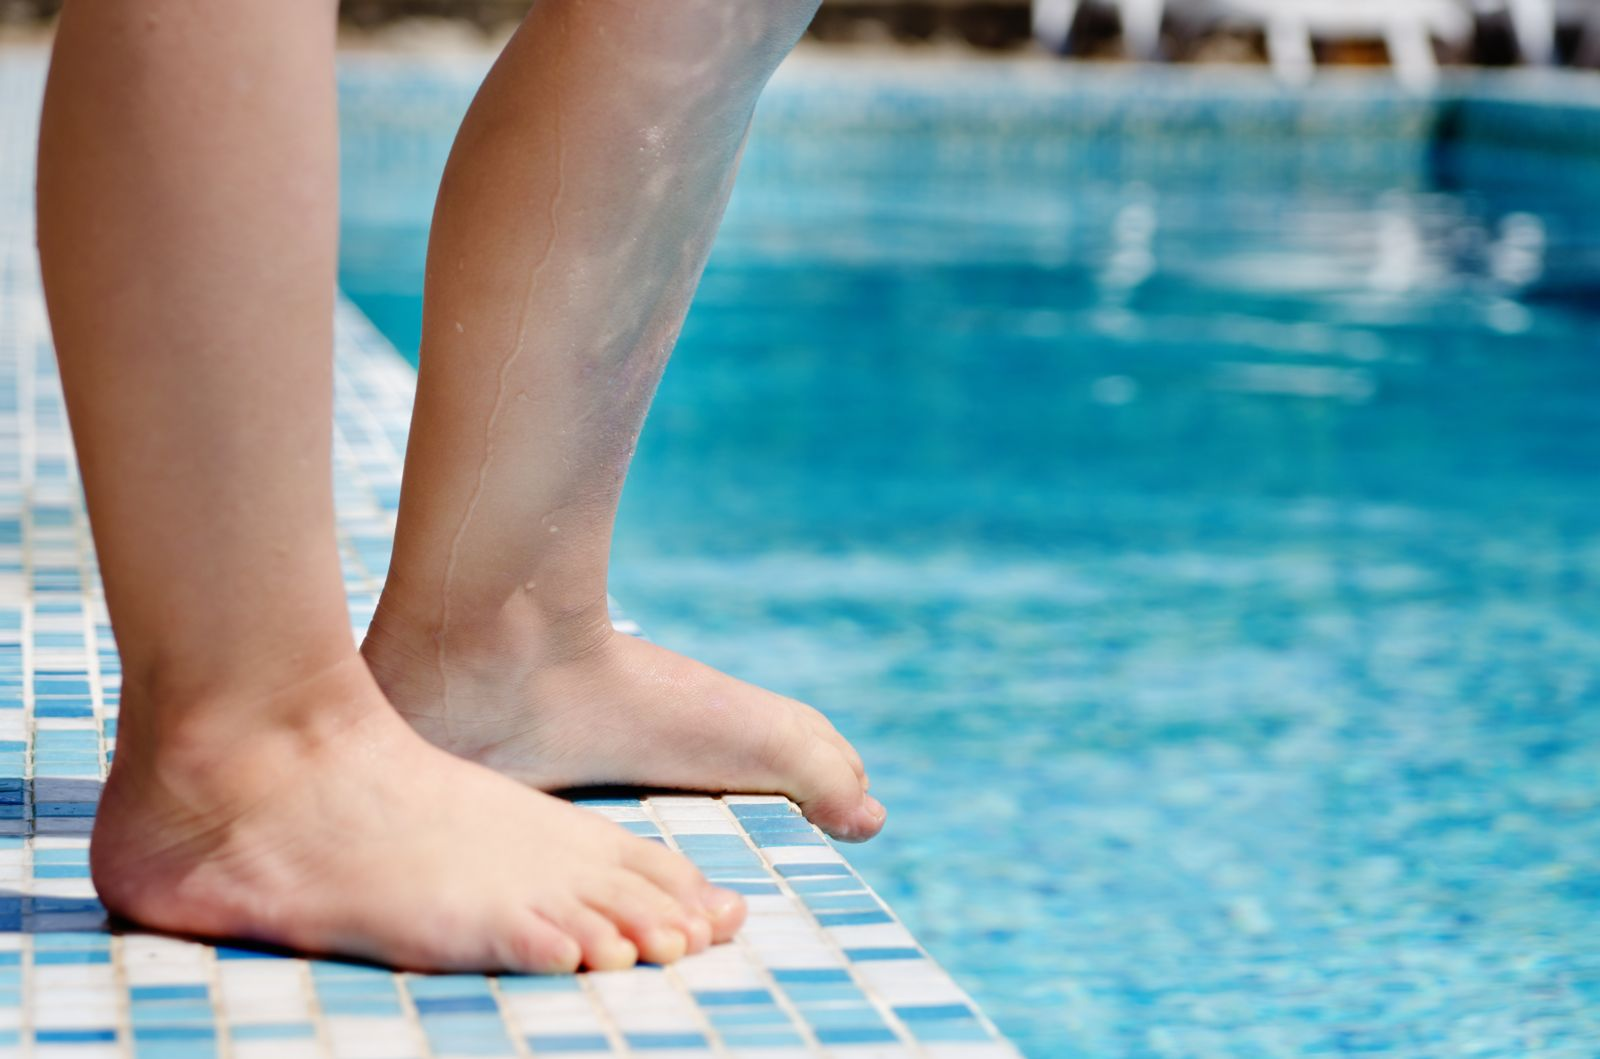 A child's flat foot after the age of two or three should be cause for concern